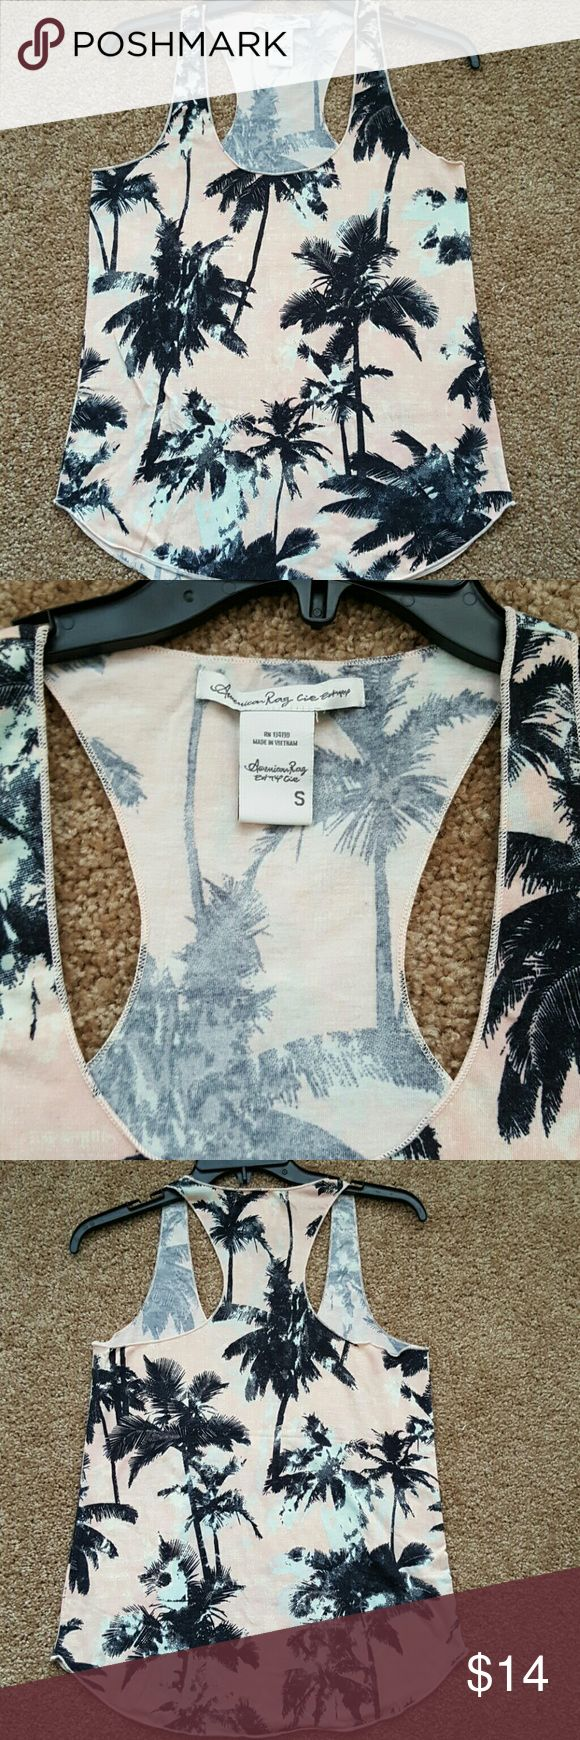 American Rag palm tree tank Small Small tank with black palm trees on white, blush pink, and sky blue background. New without tags. Never worn American Rag Tops